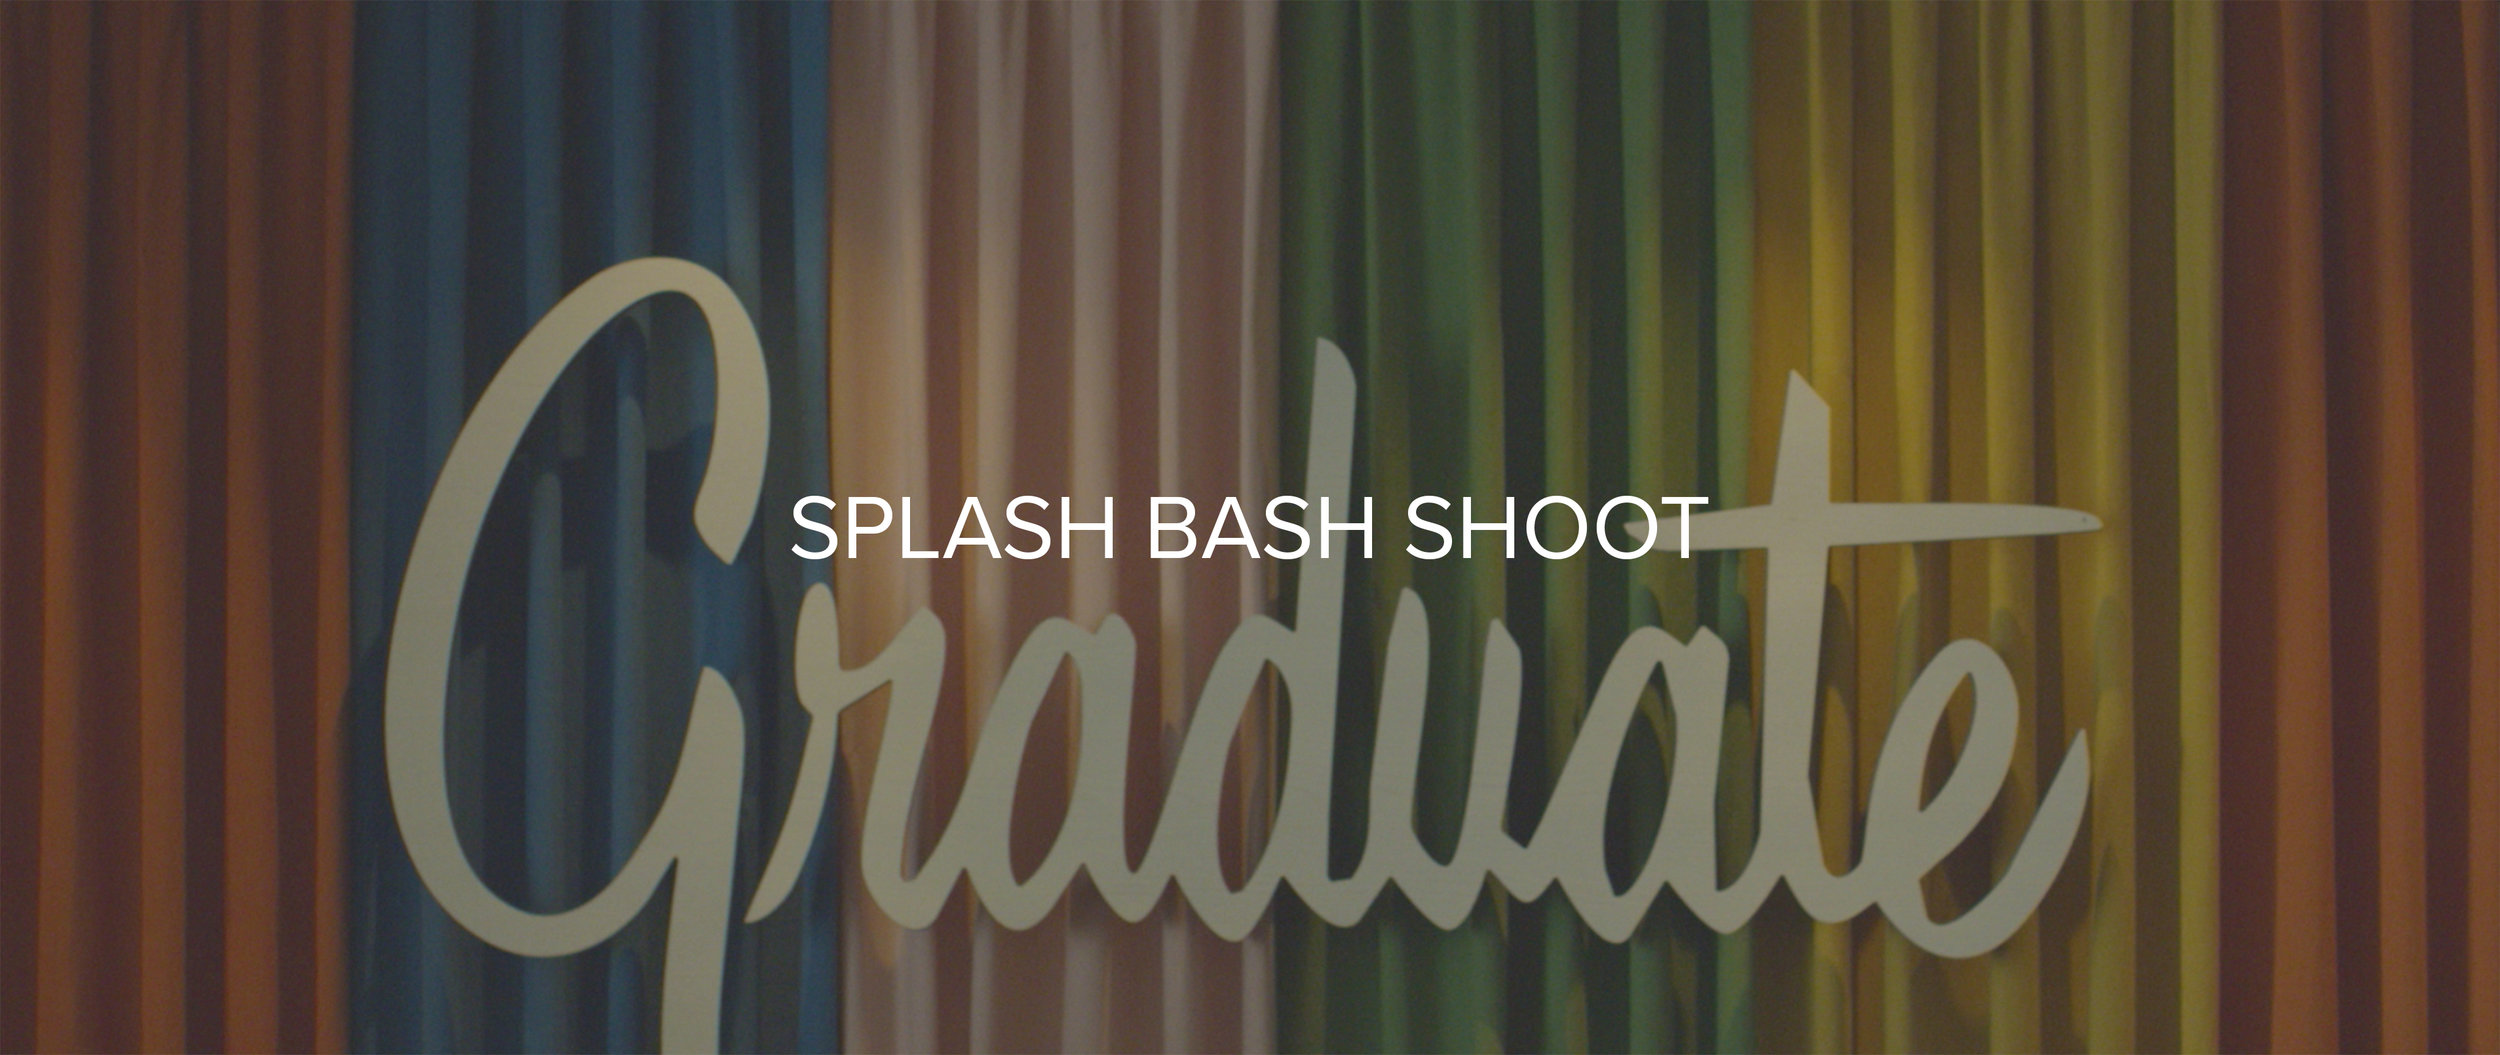 Splash Bash Shoot